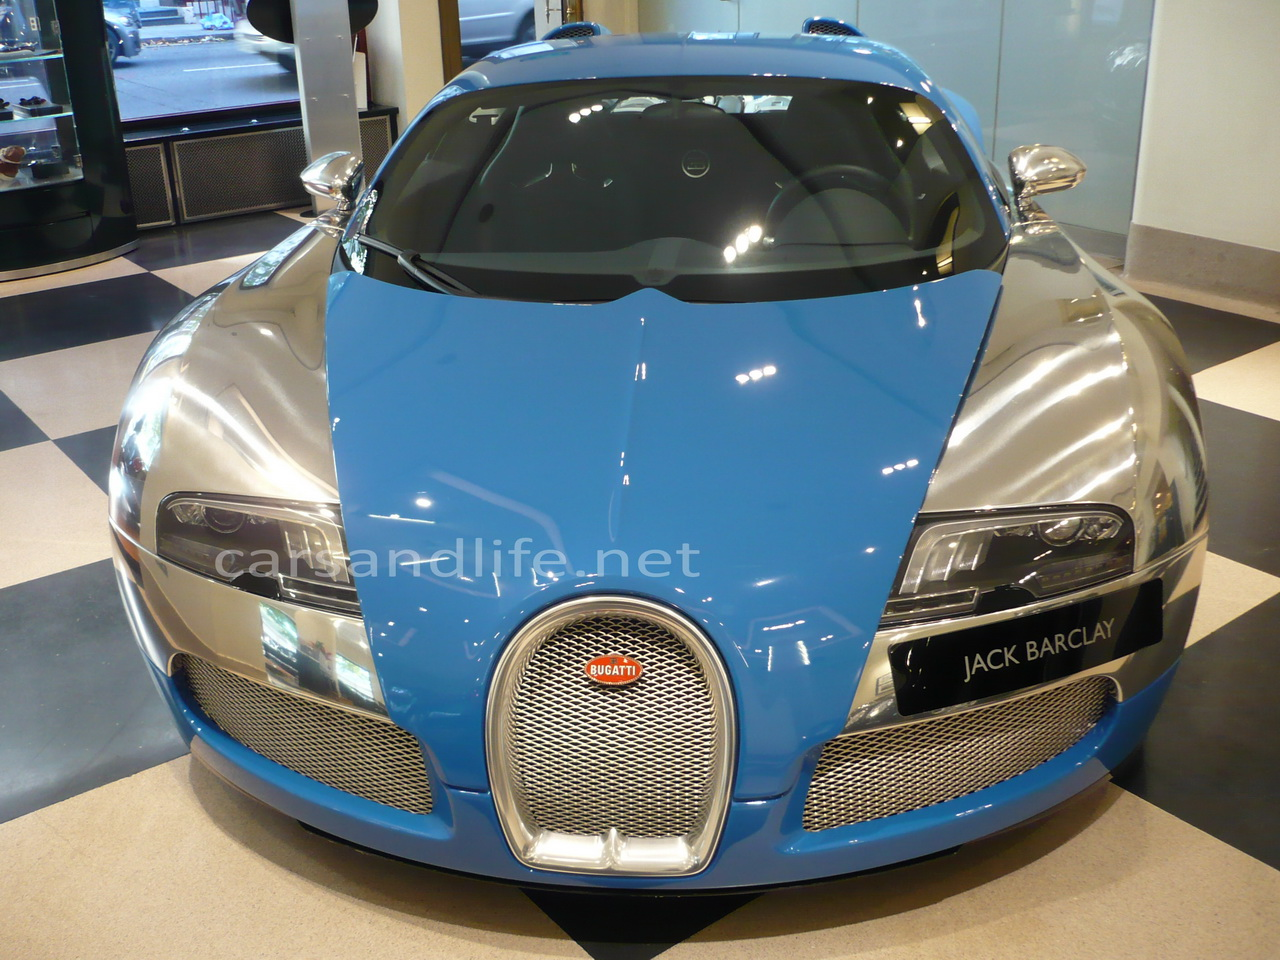 second hand bugatti veyron cars life cars fashion. Black Bedroom Furniture Sets. Home Design Ideas